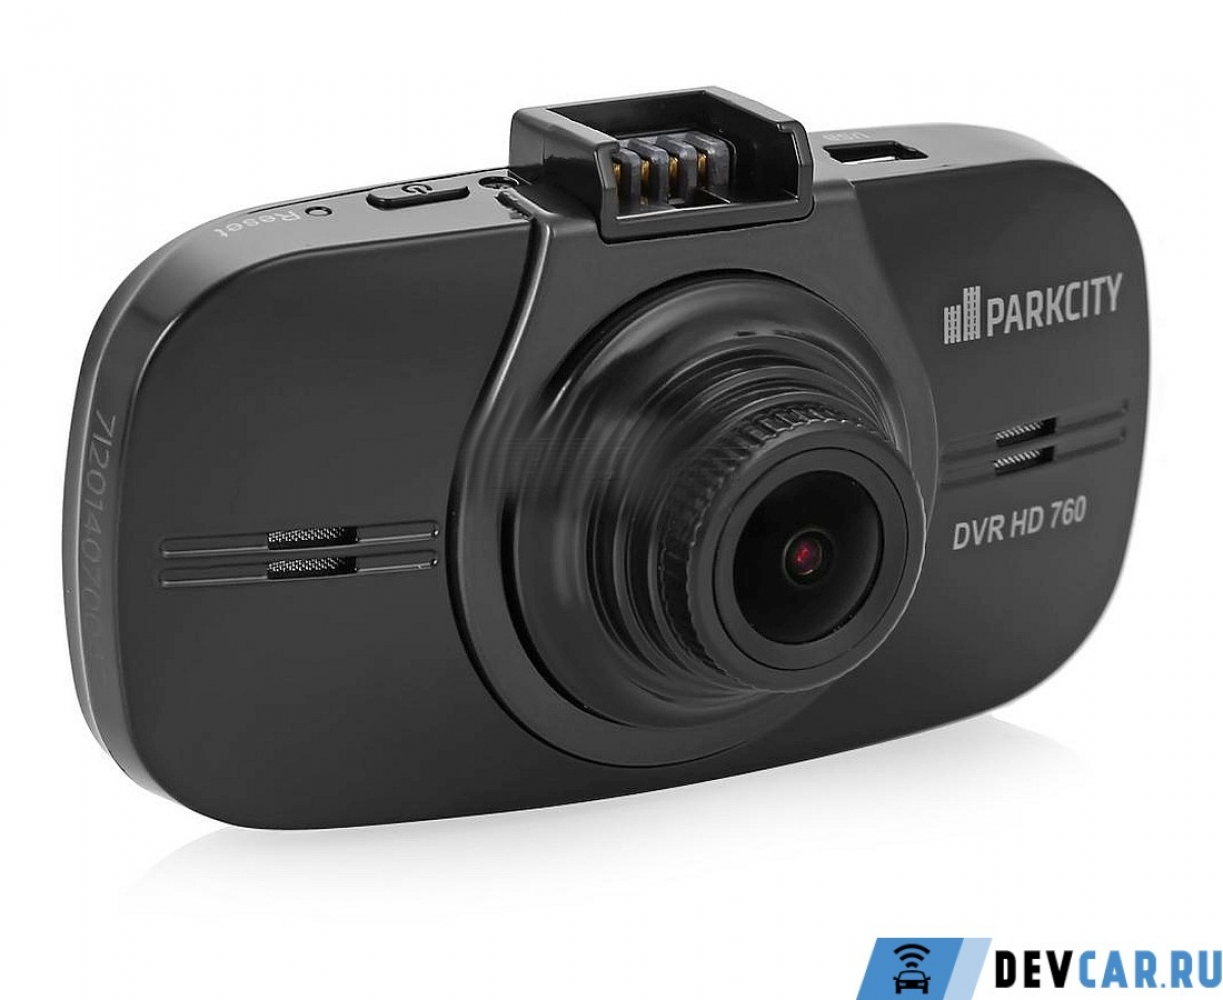 ParkCity DVR HD 760 - 17905